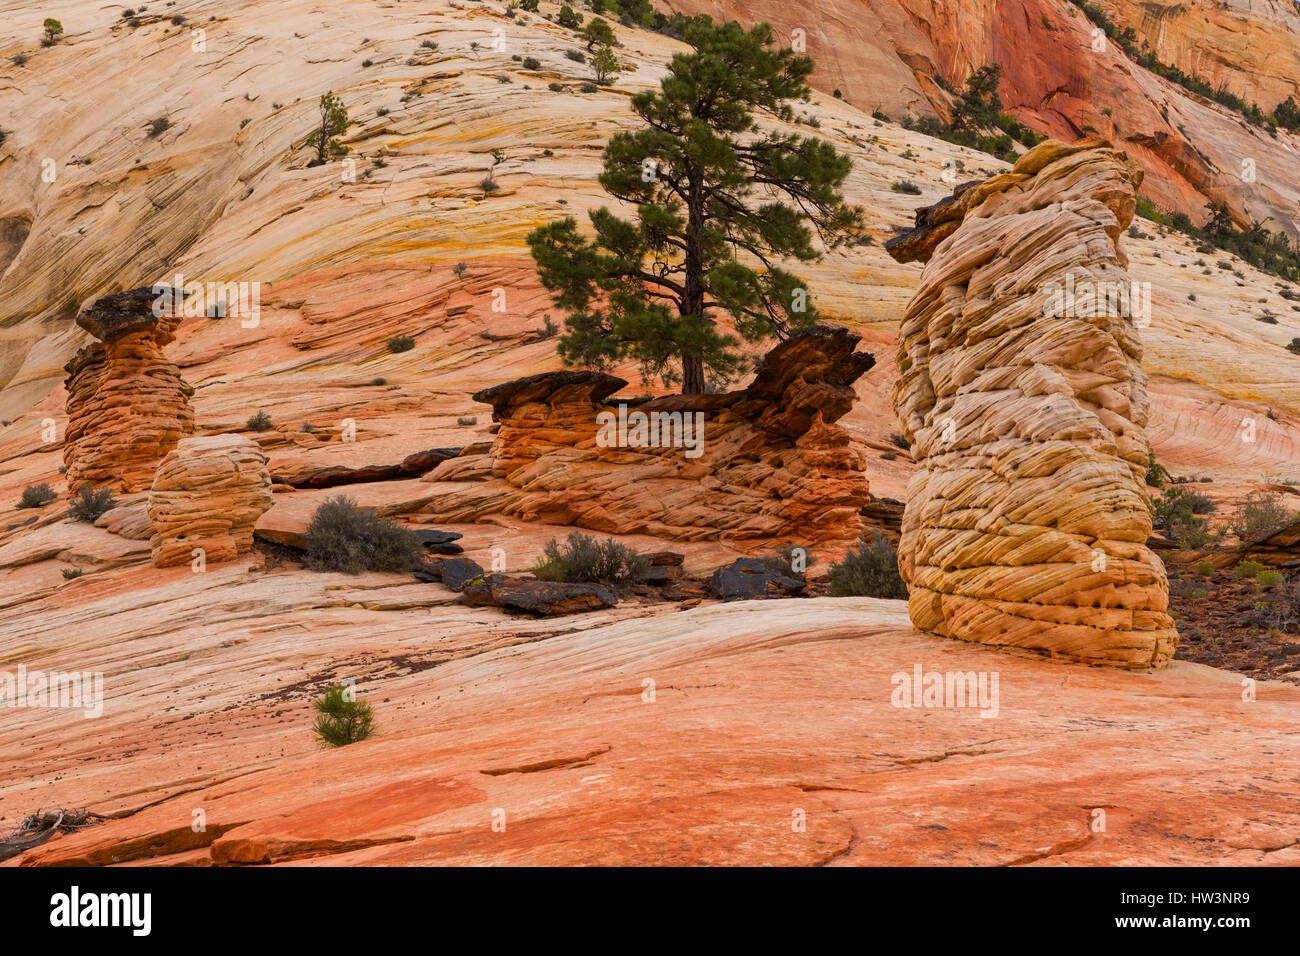 Rock formations, Zion National Park, UT, USA - Stock Image